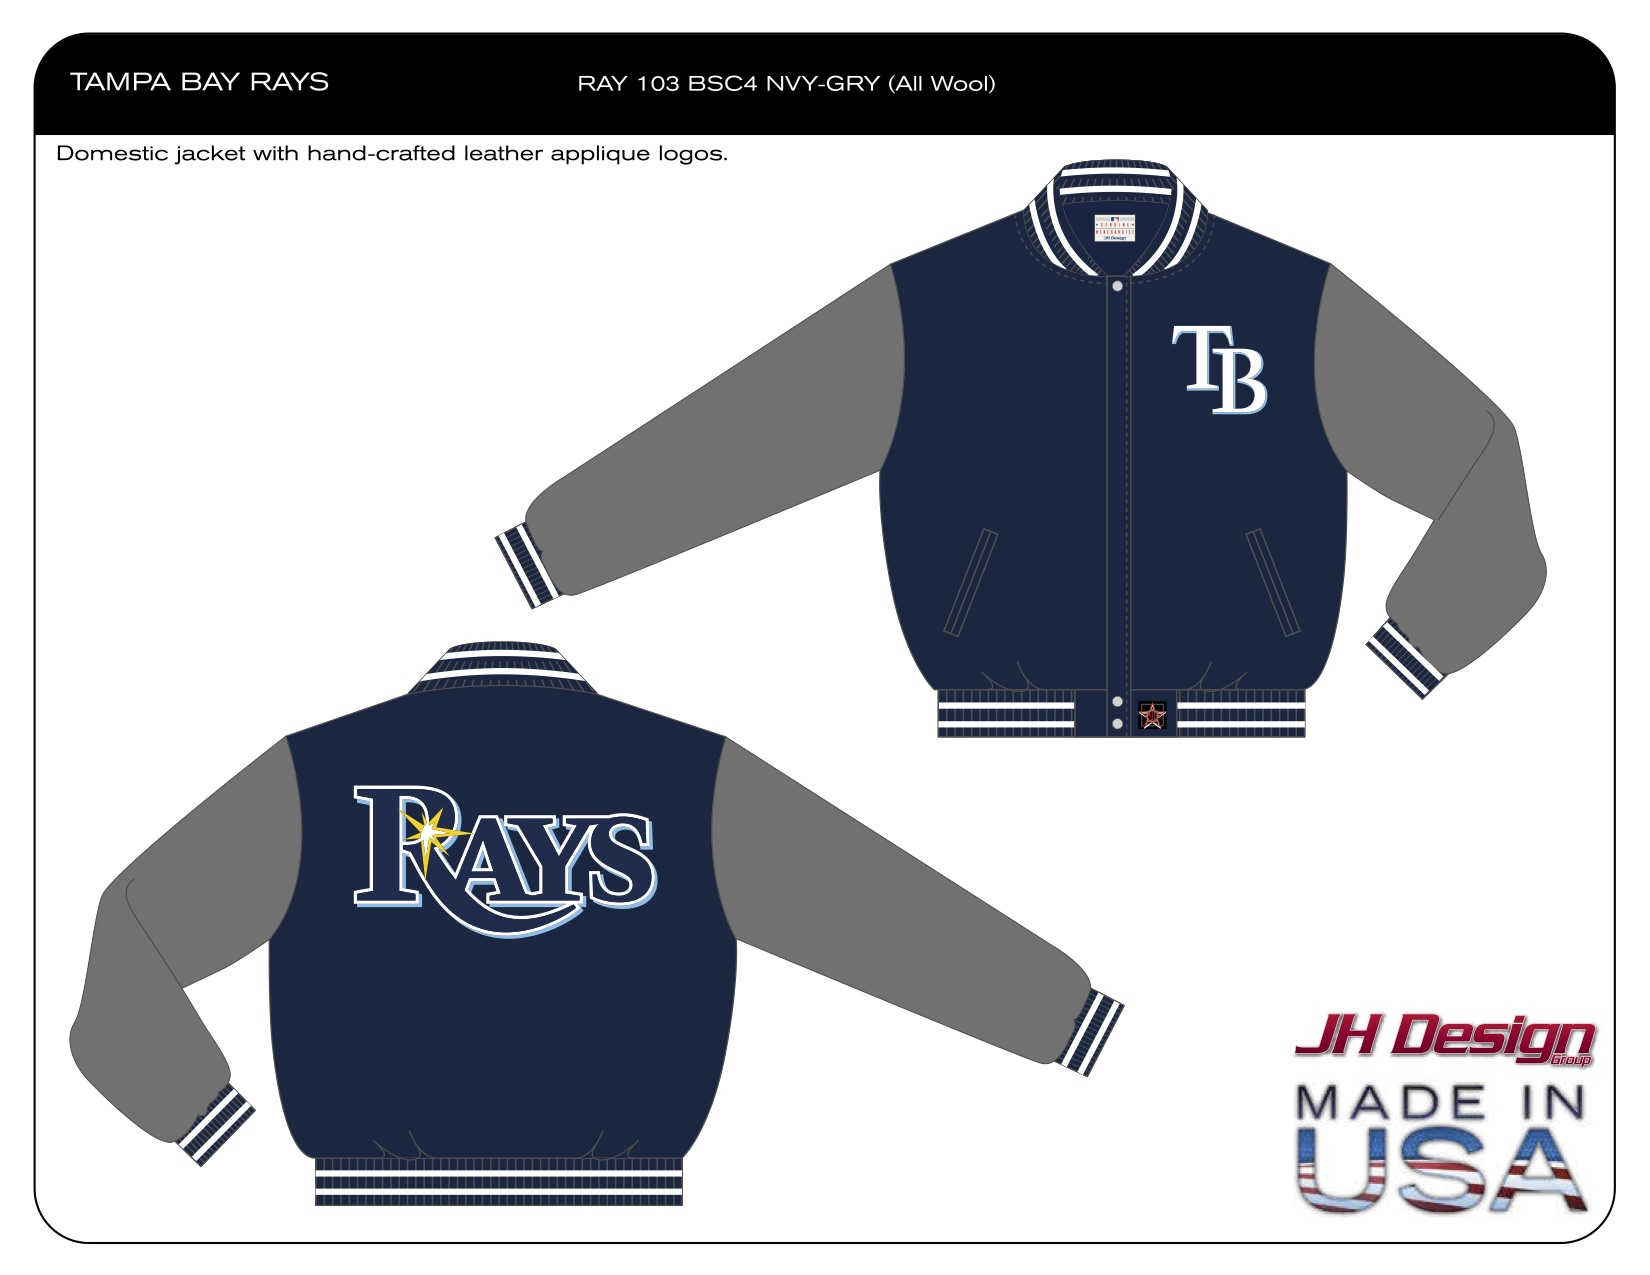 RAY 103 BSC4 NVY-GRY